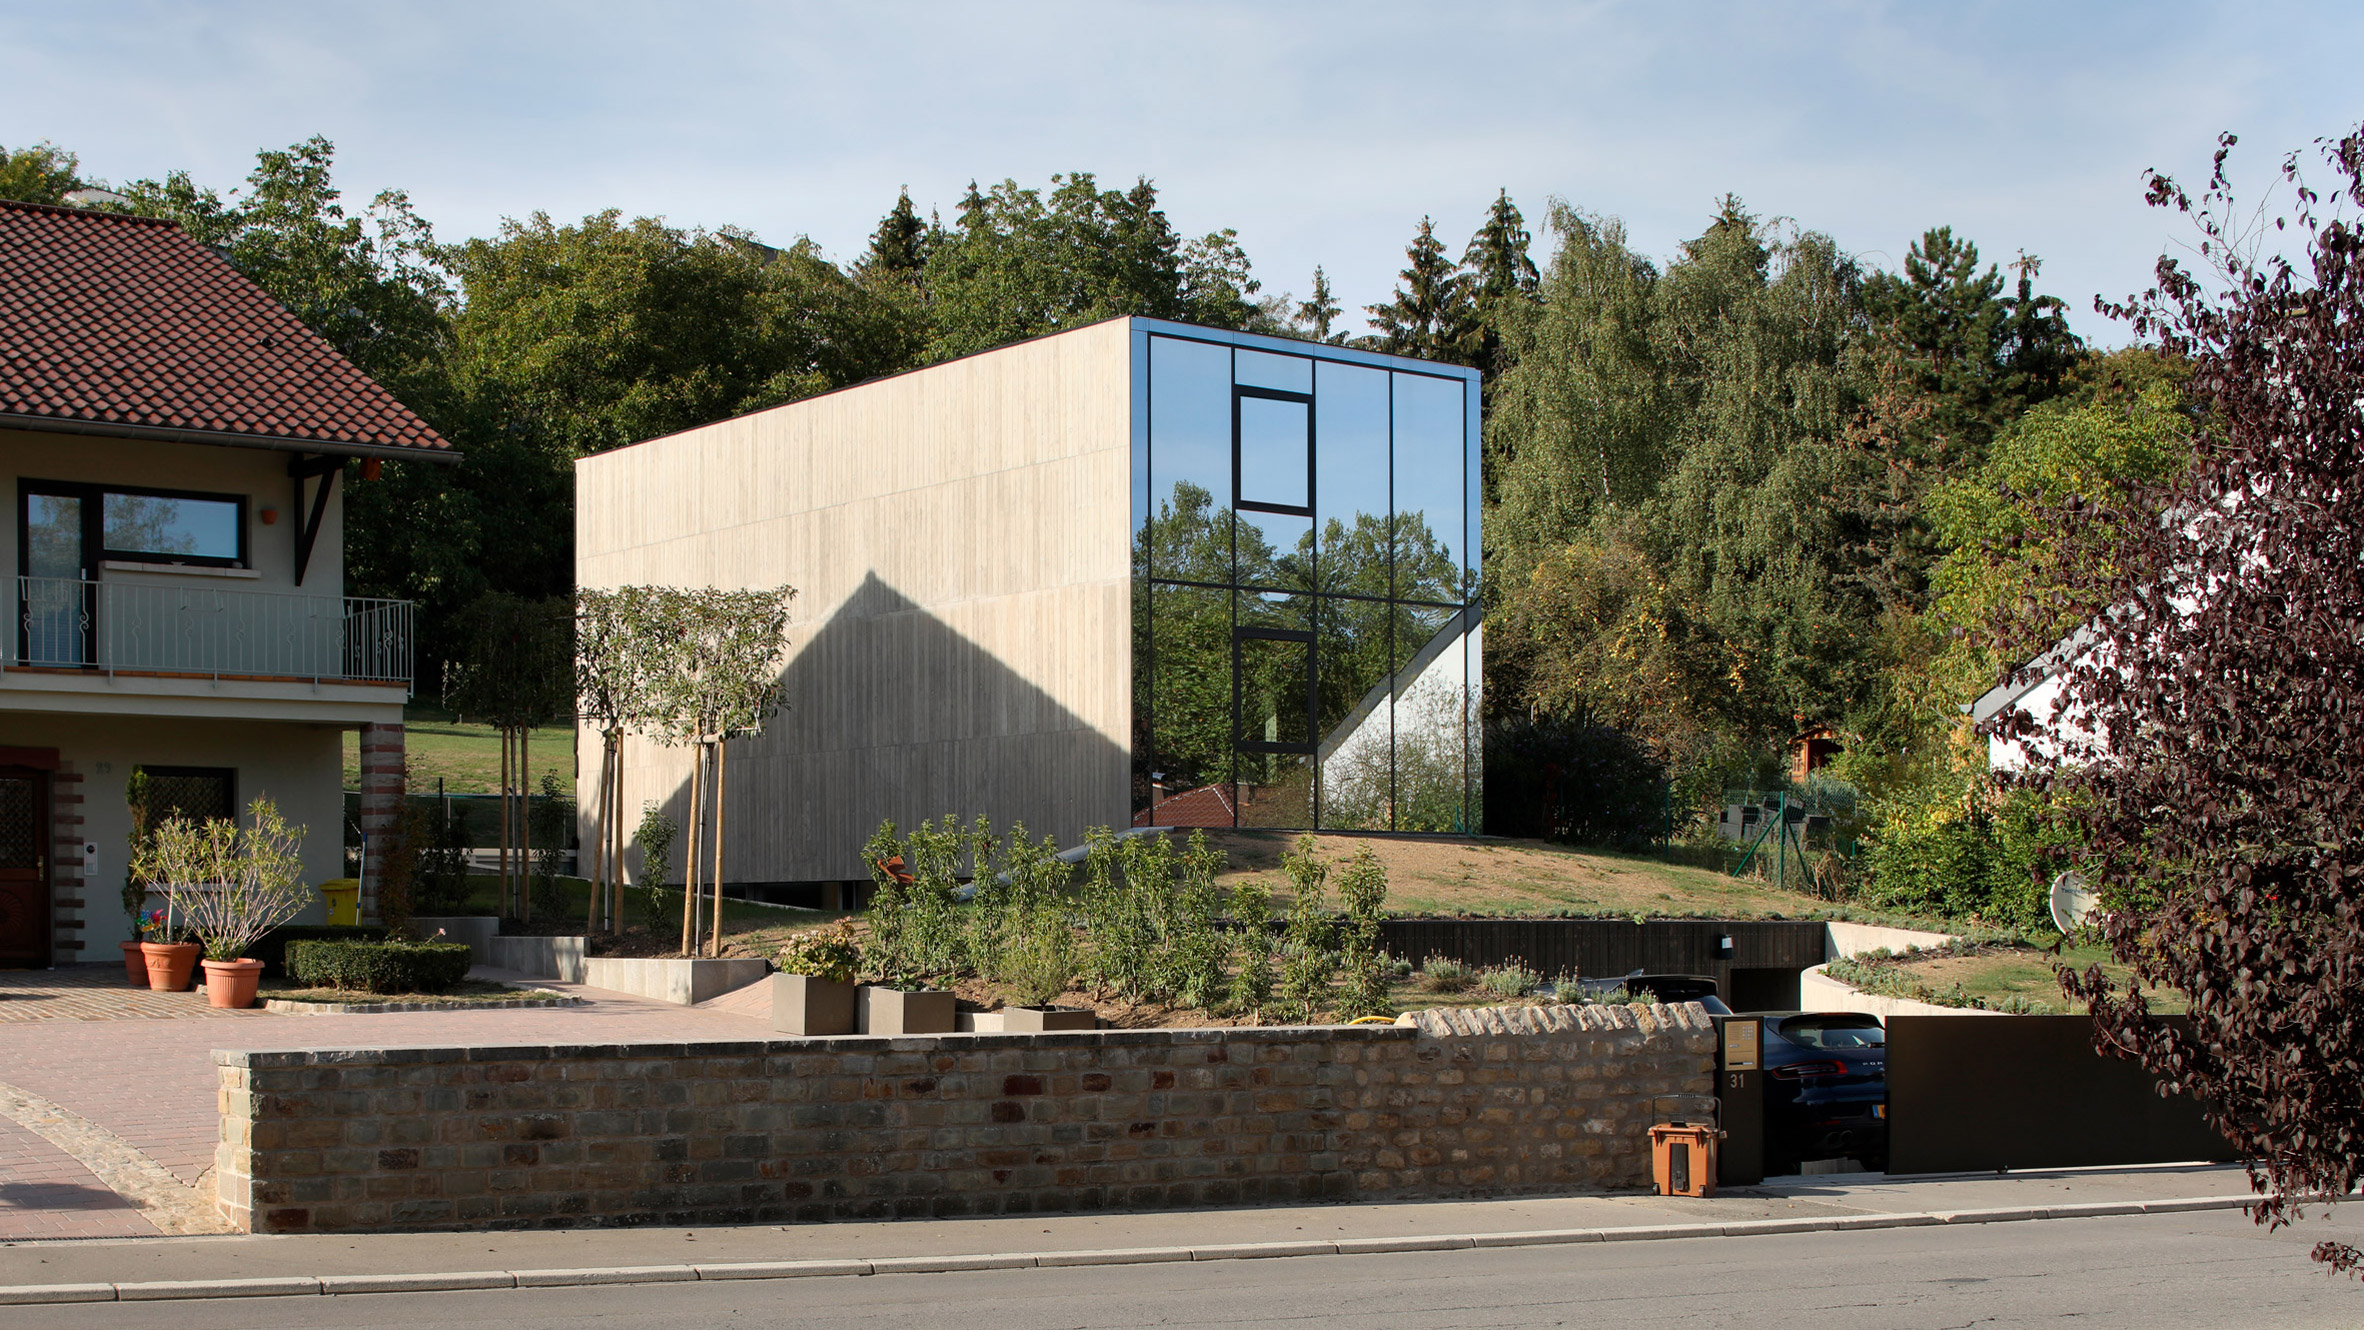 Swanky concrete house loves glass too